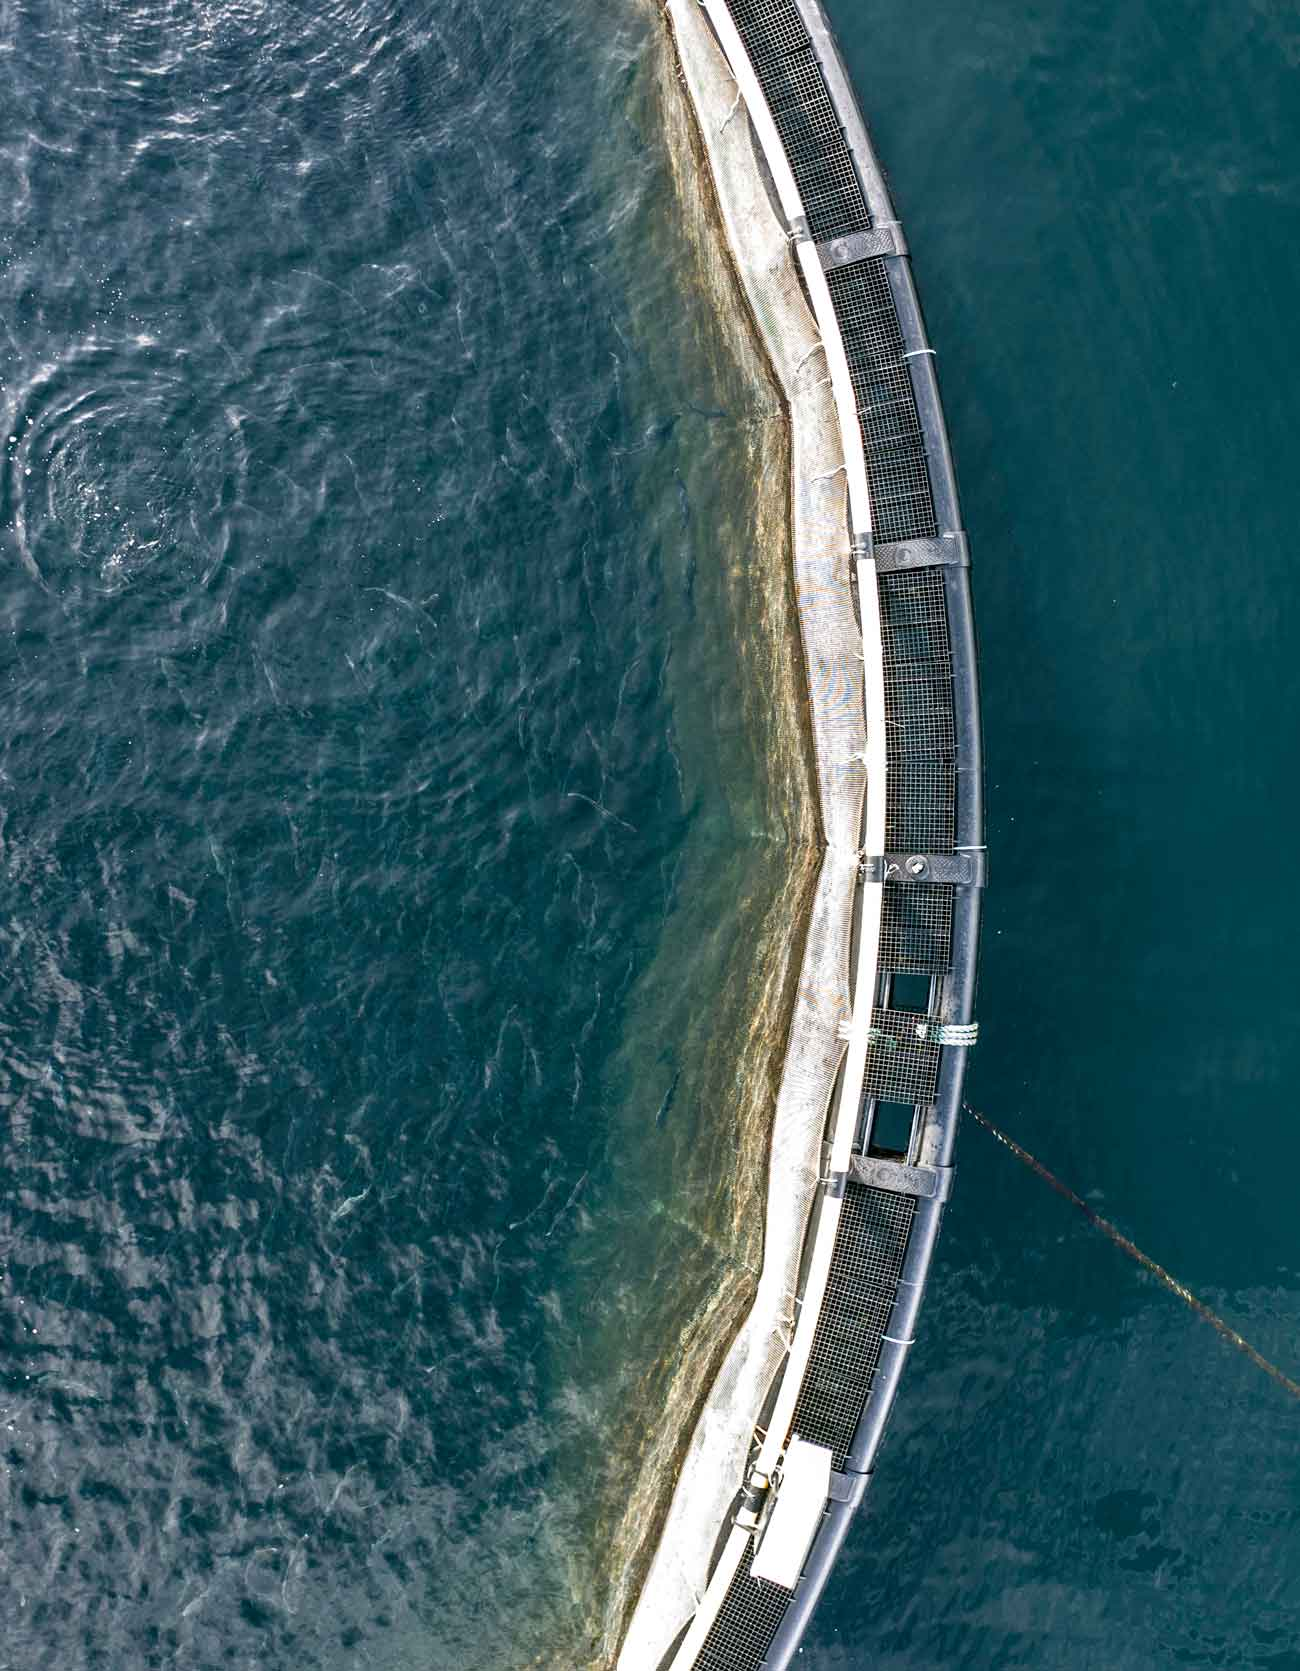 bird's eye view of a fish farm drone photo'